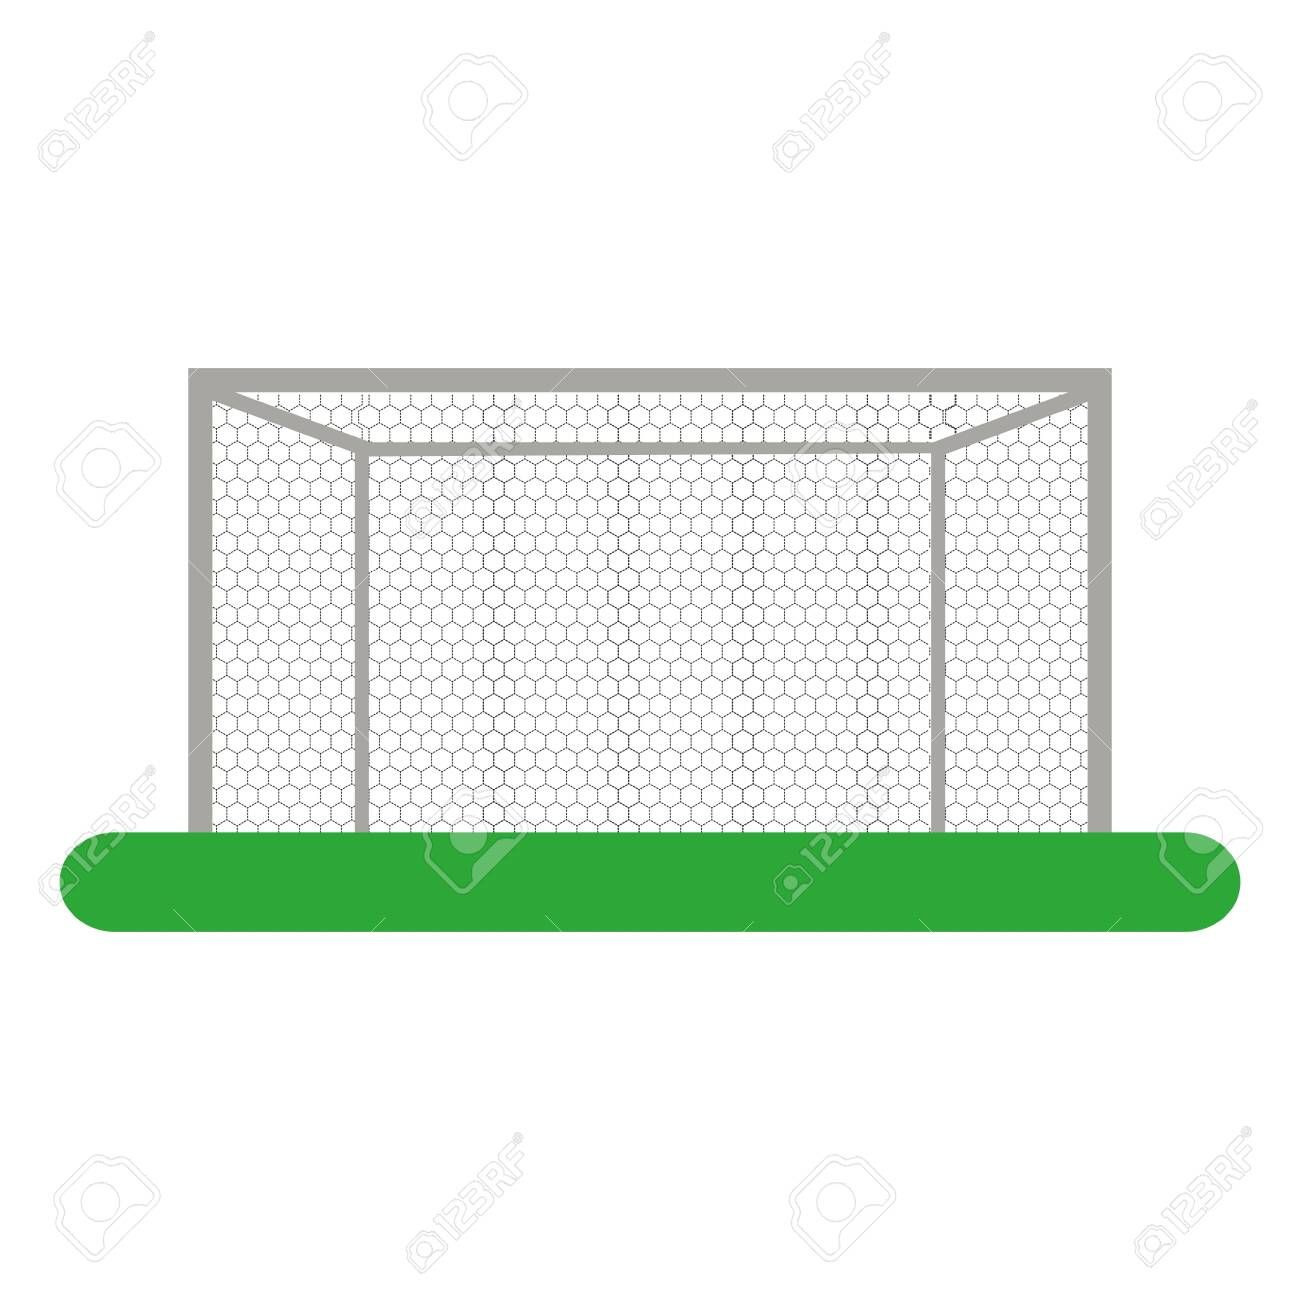 Soccer Goal Linear Icon Sport Icons Line Illustration Outline Drawings Paint Markers